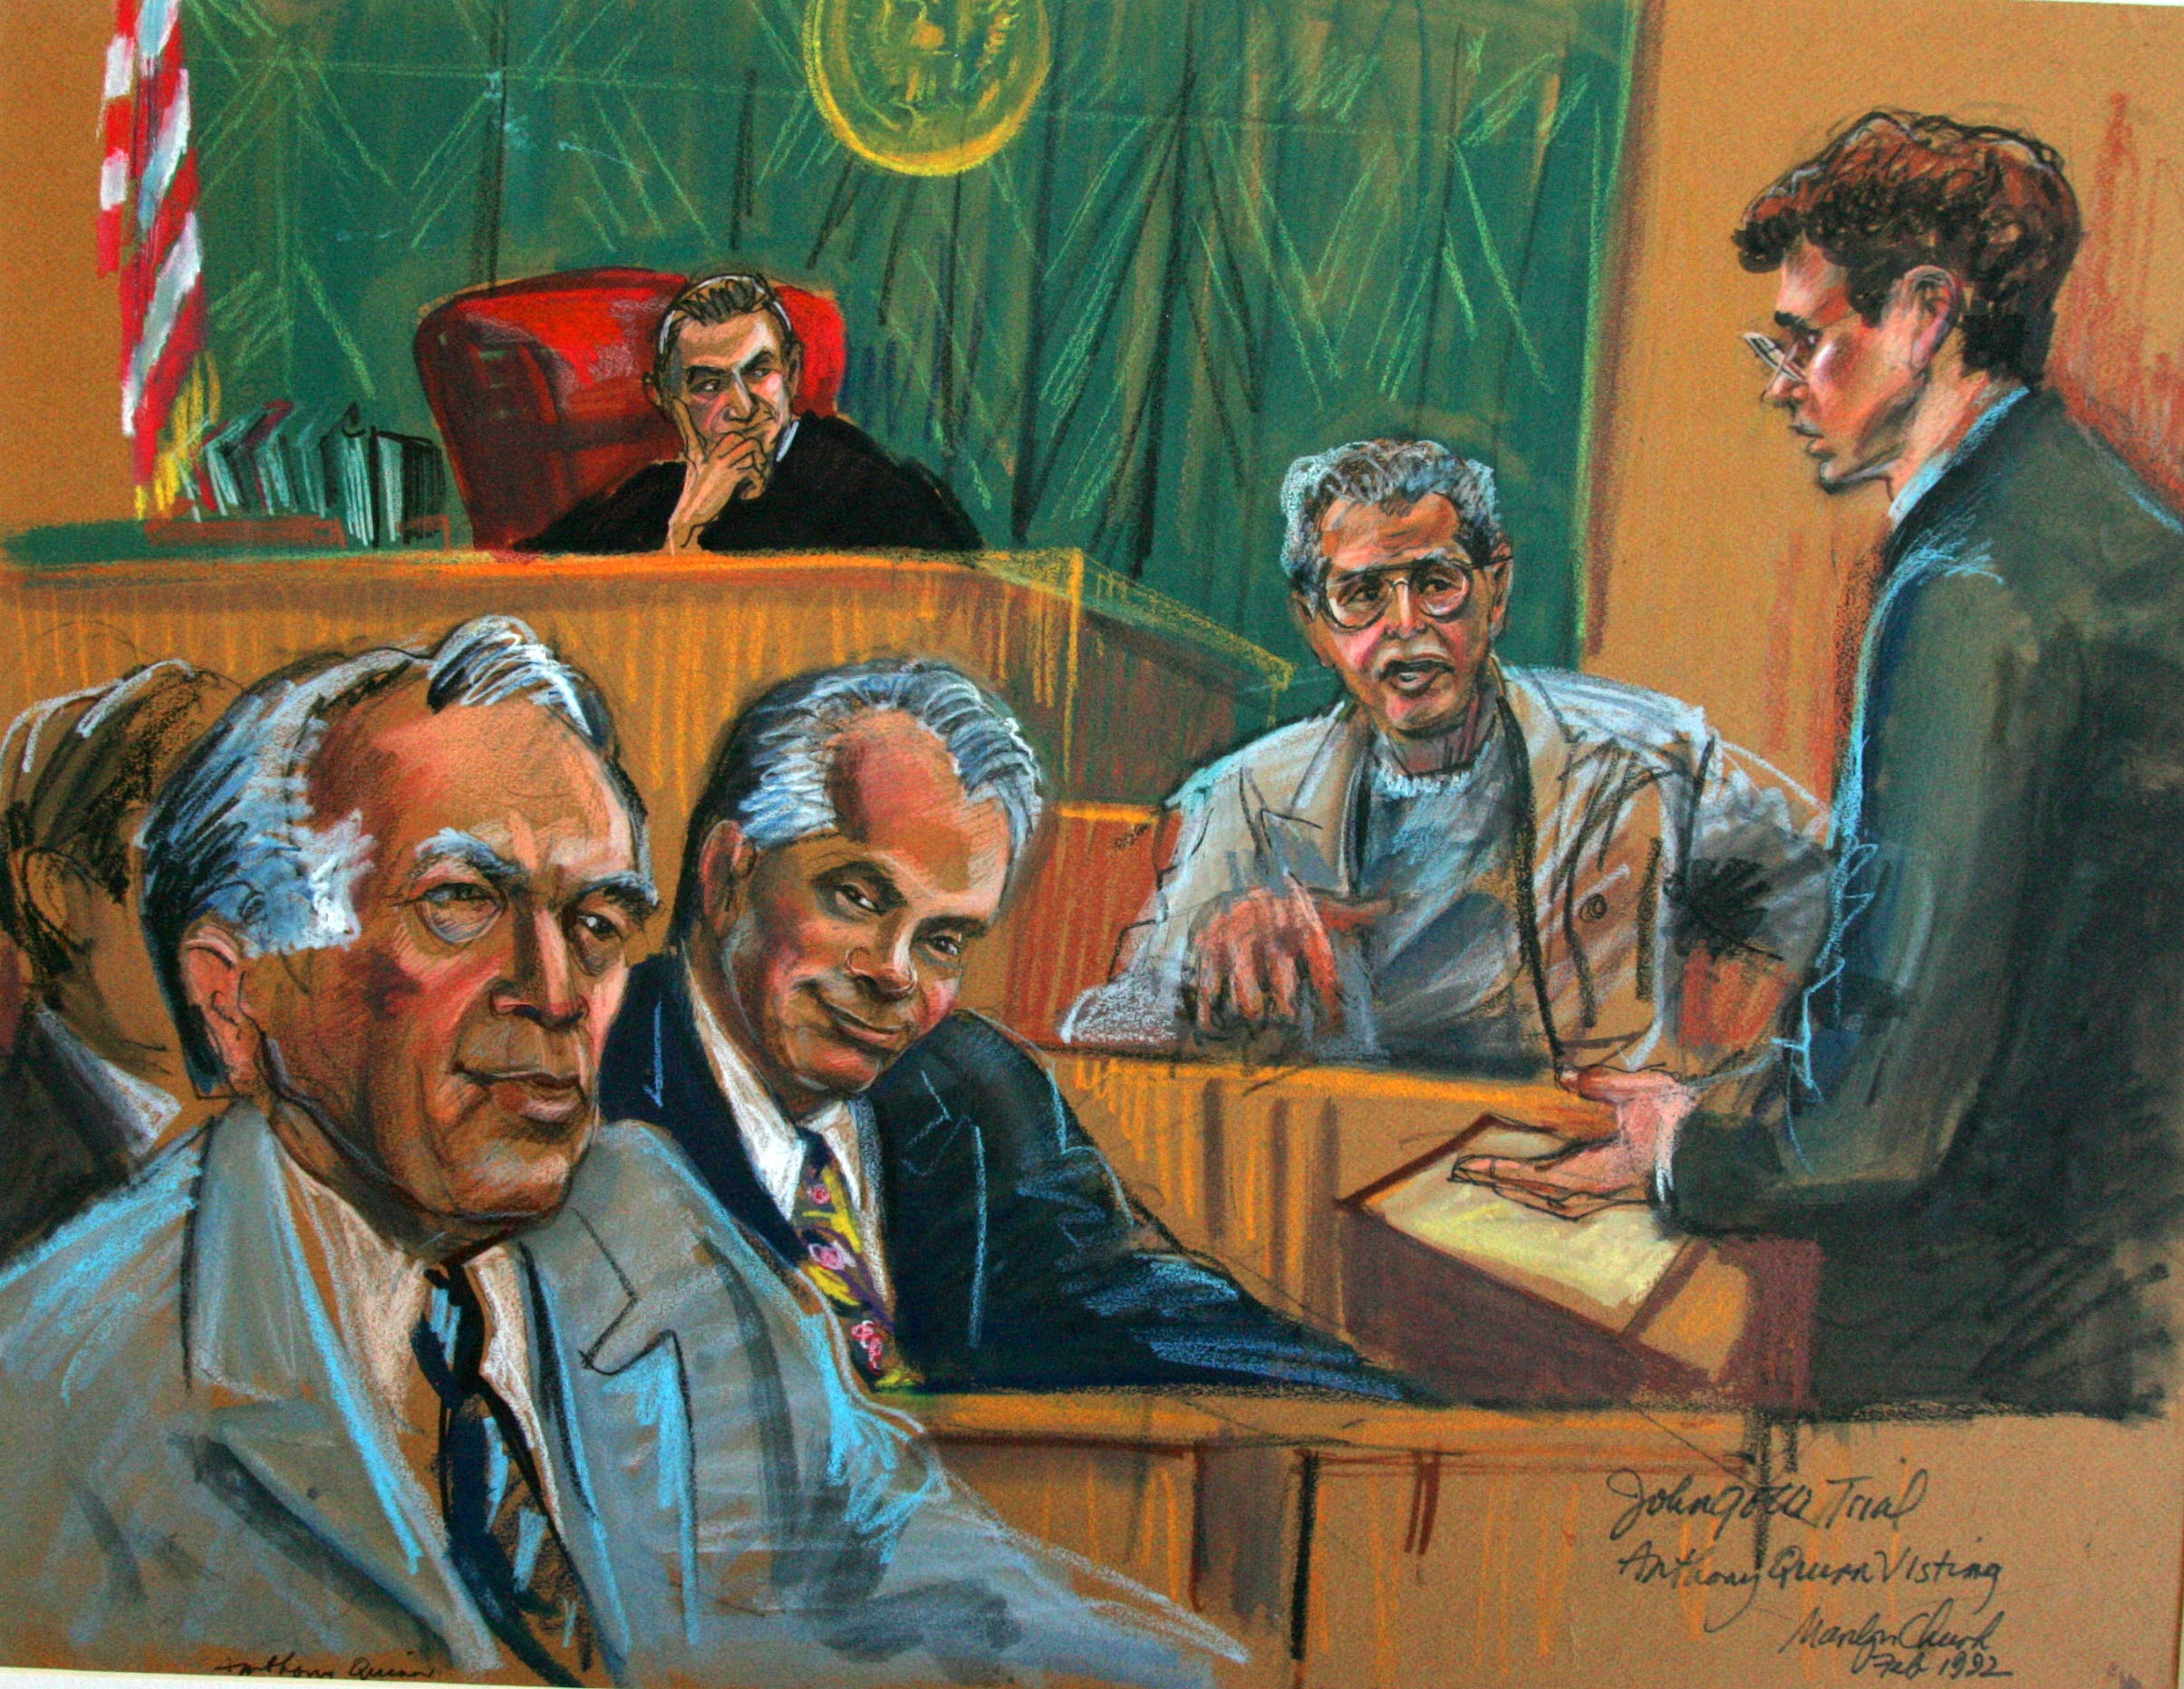 The John Gotti Trial